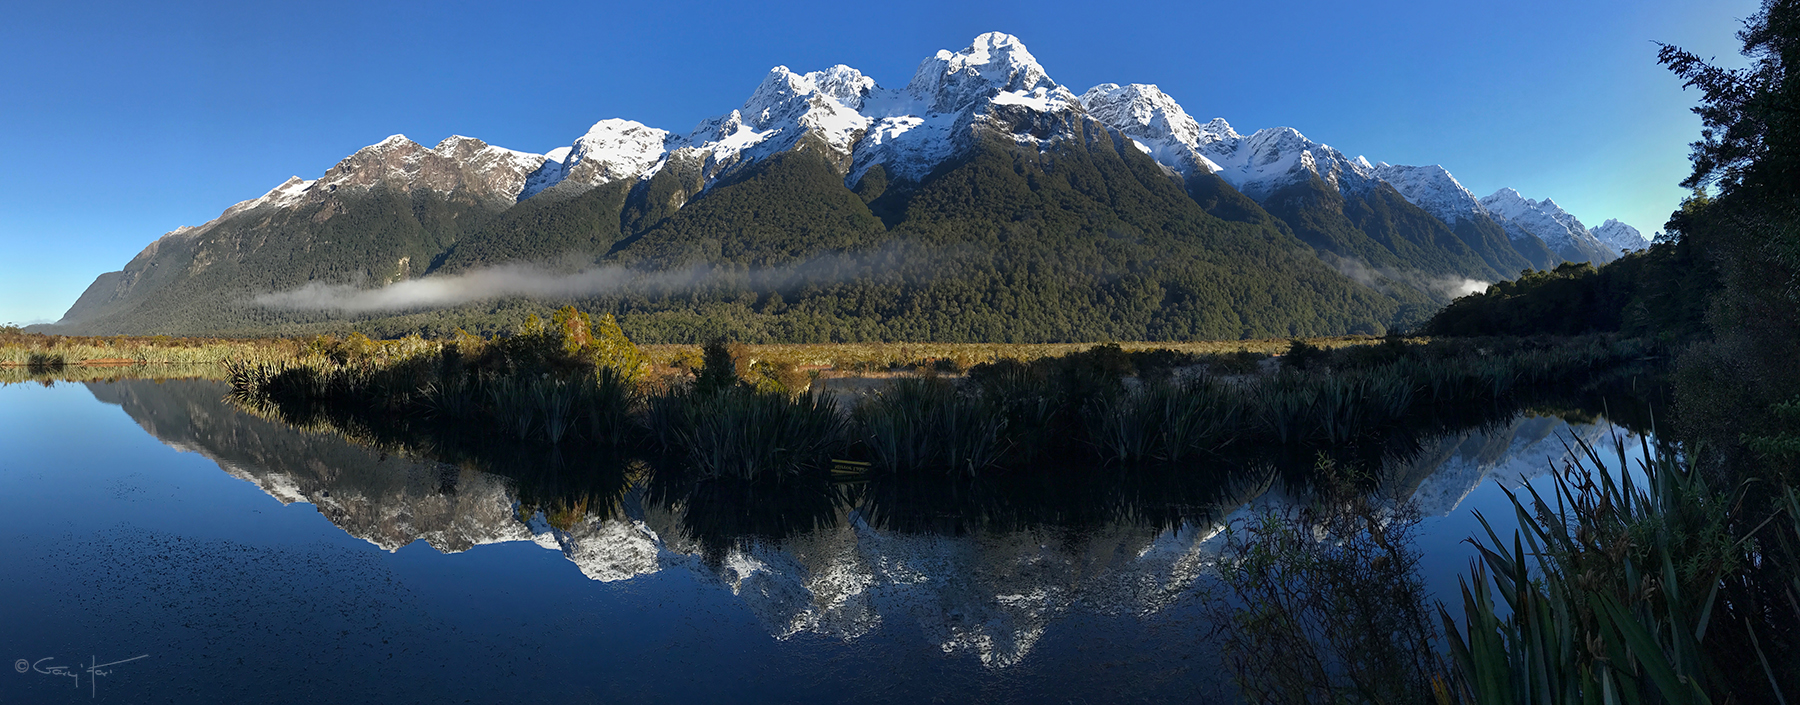 Antelope Valley Ford >> Mt. Eglinton, Mirror Lakes, New Zealand   Eloquent Images by Gary Hart